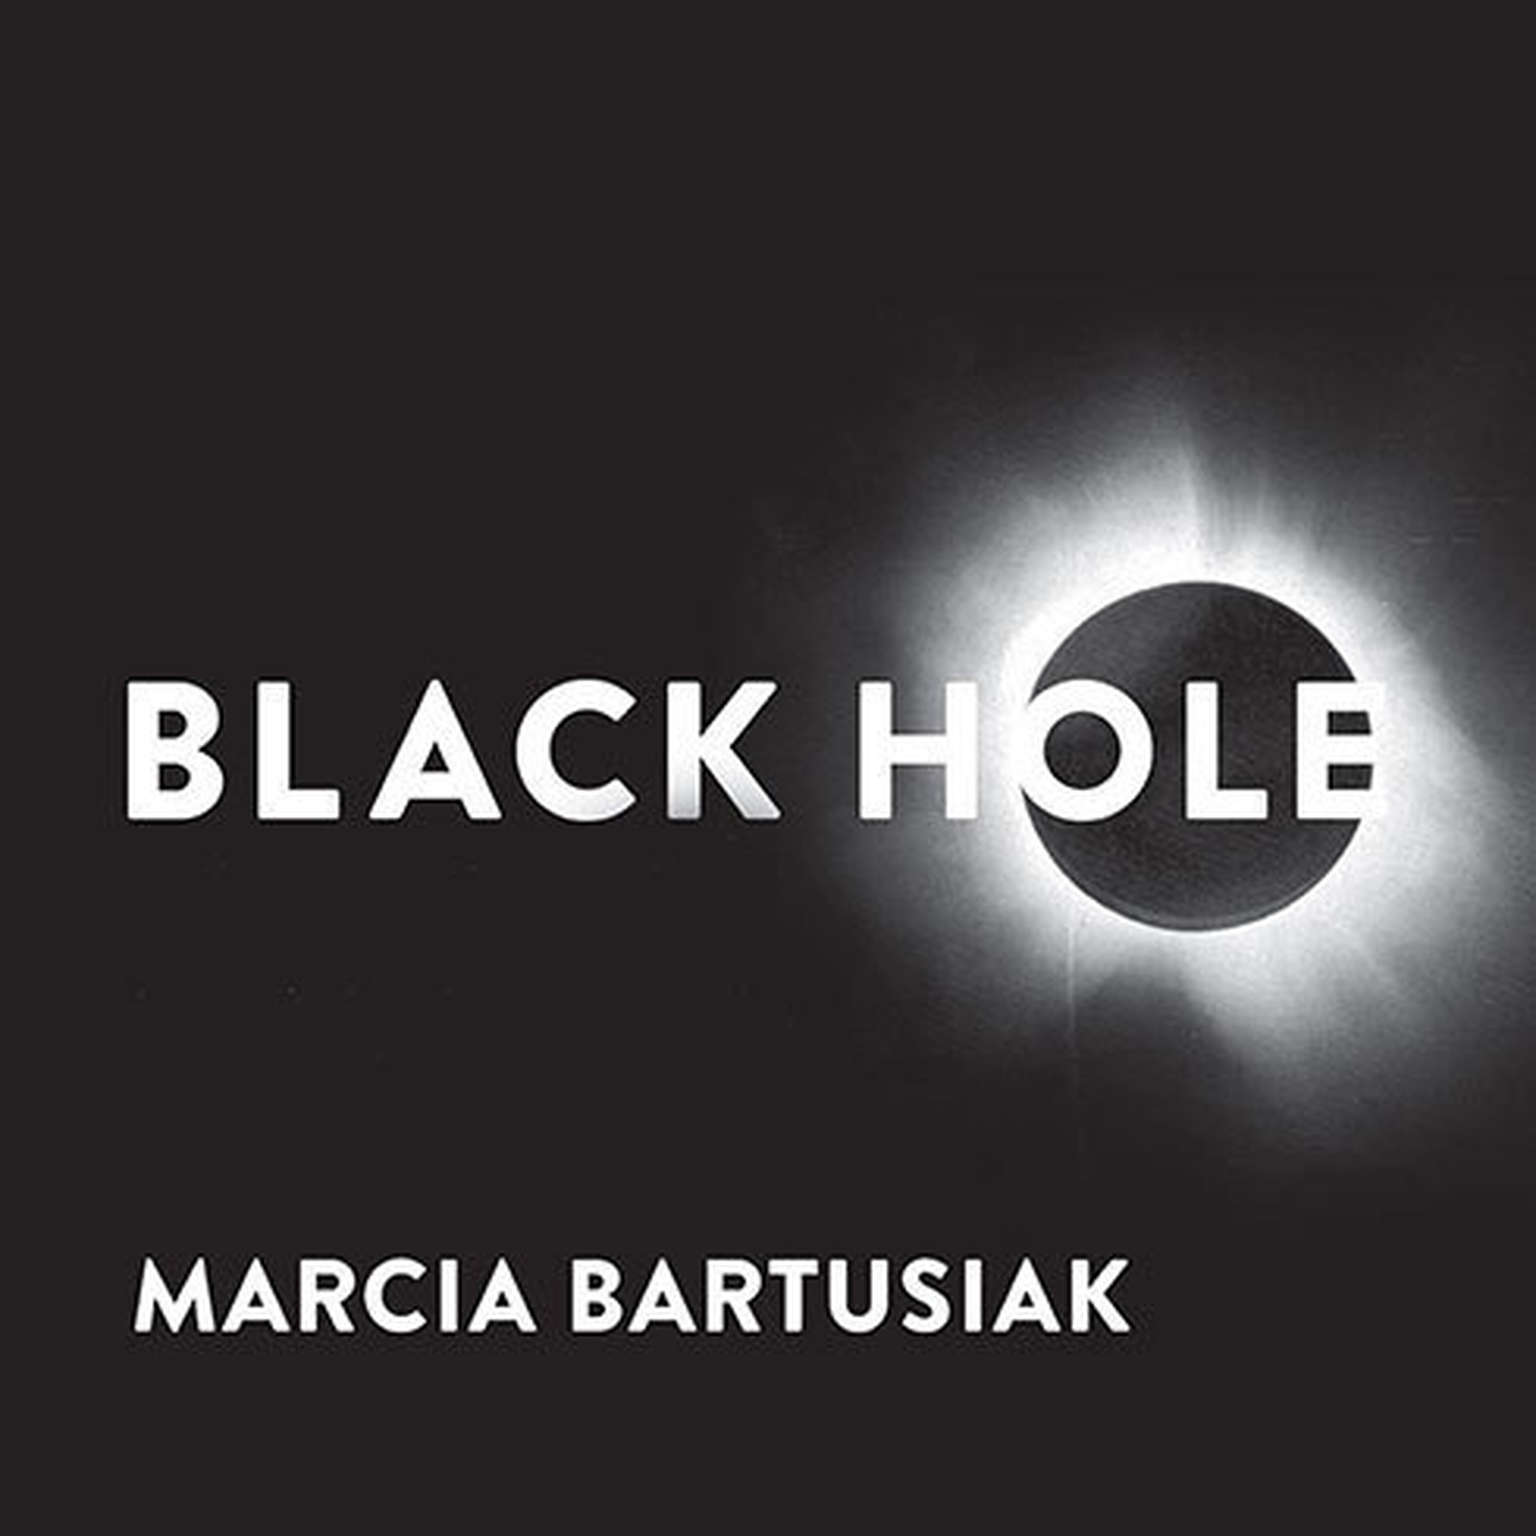 Printable Black Hole: How an Idea Abandoned by Newtonians, Hated by Einstein, and Gambled on by Hawking Became Loved Audiobook Cover Art